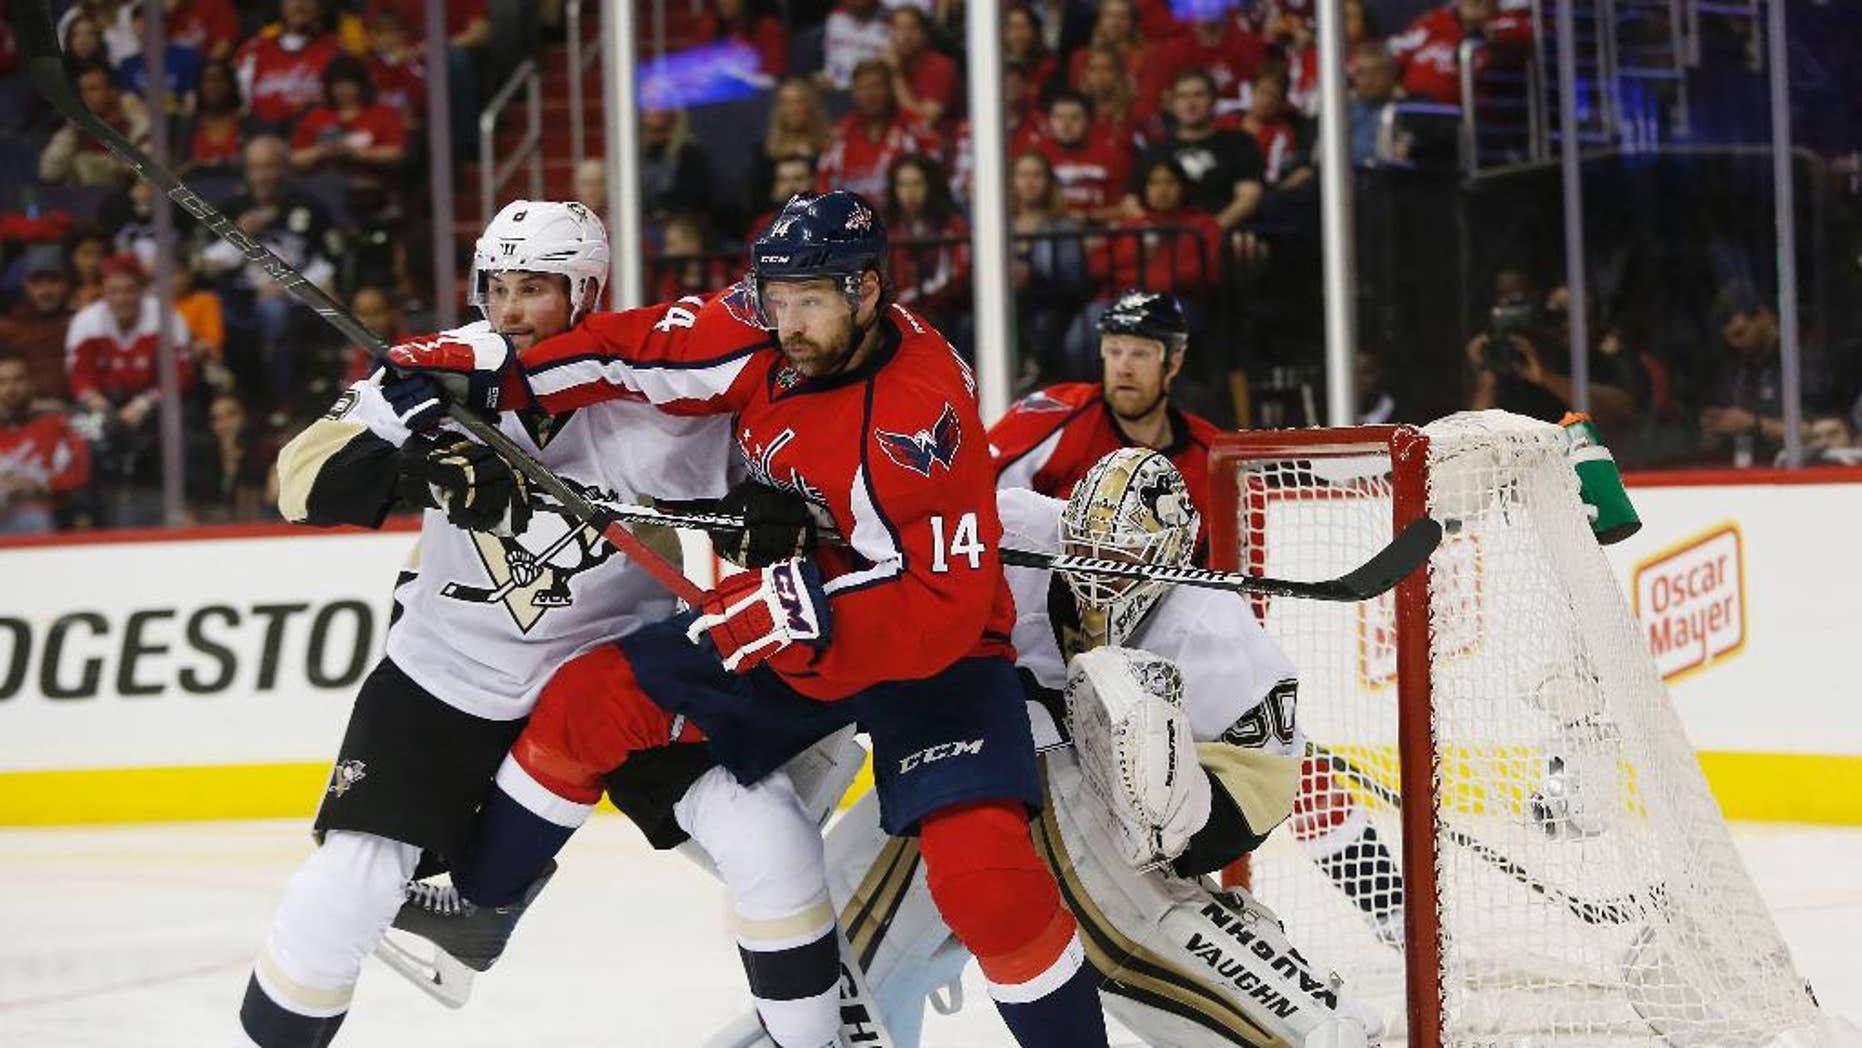 Washington Capitals right wing Justin Williams (14) and Pittsburgh Penguins defenseman Brian Dumoulin (8) shove each other as they work in front of Pittsburgh Penguins goalie Matt Murray (30) during the second period of Game 5 in an NHL hockey Stanley Cup Eastern Conference semifinals Saturday, May 7, 2016, in Washington. (AP Photo/Pablo Martinez Monsivais)